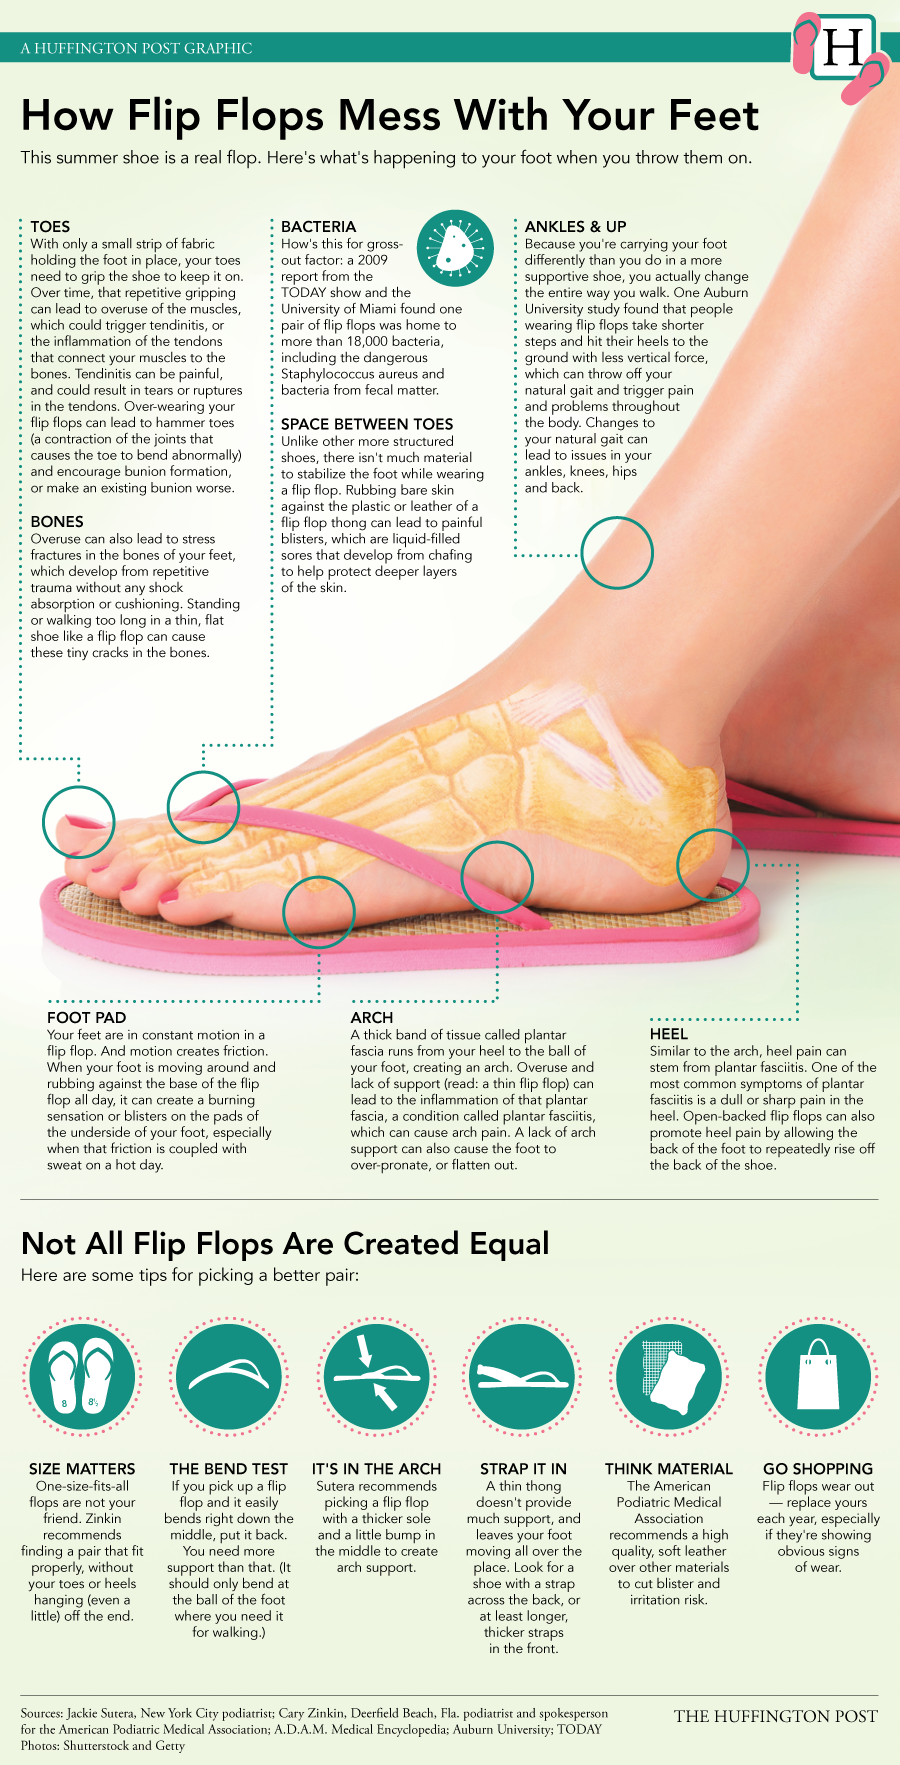 80cb20c08 Are your flip flops providing enough support for your feet this summer   Here are a few tips from The Huffington Post to help you pick a pair that  properly ...